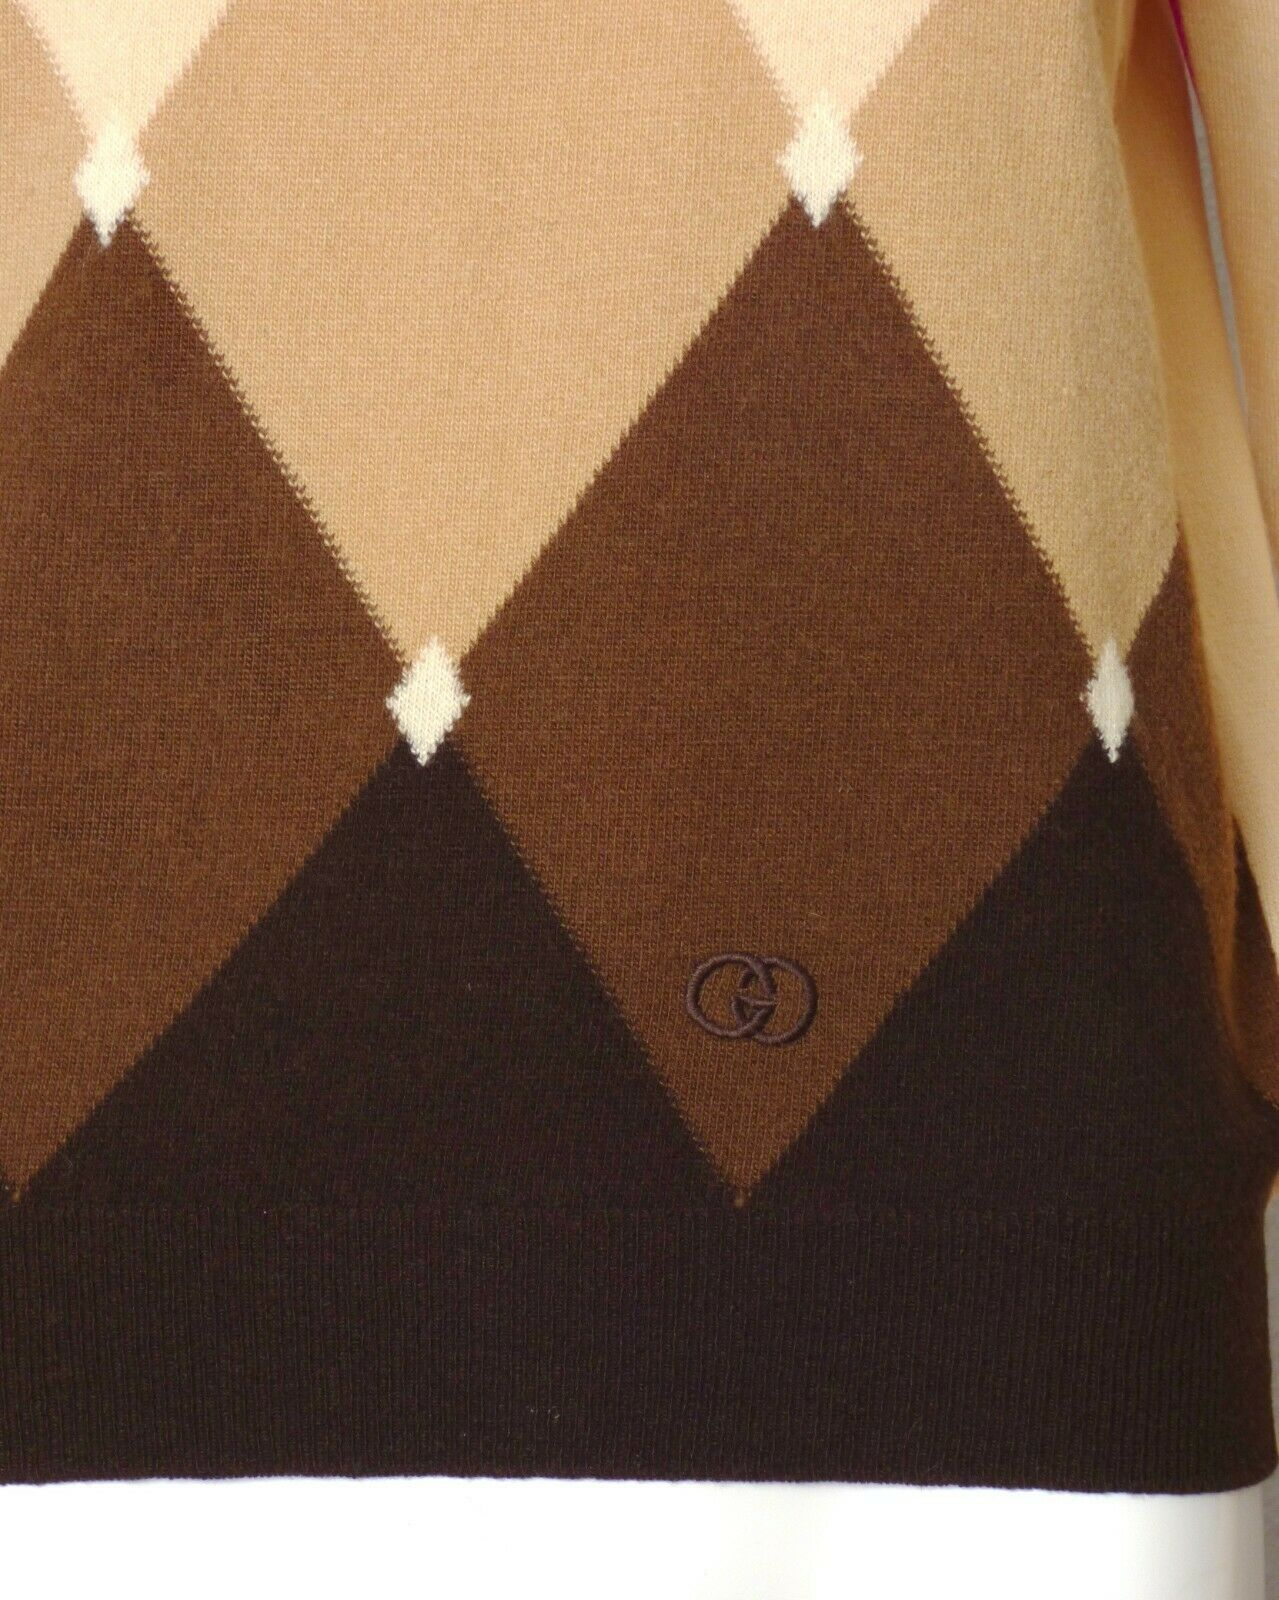 GUCCI-1970s Cashmere Sweater, Size-8 - image 4